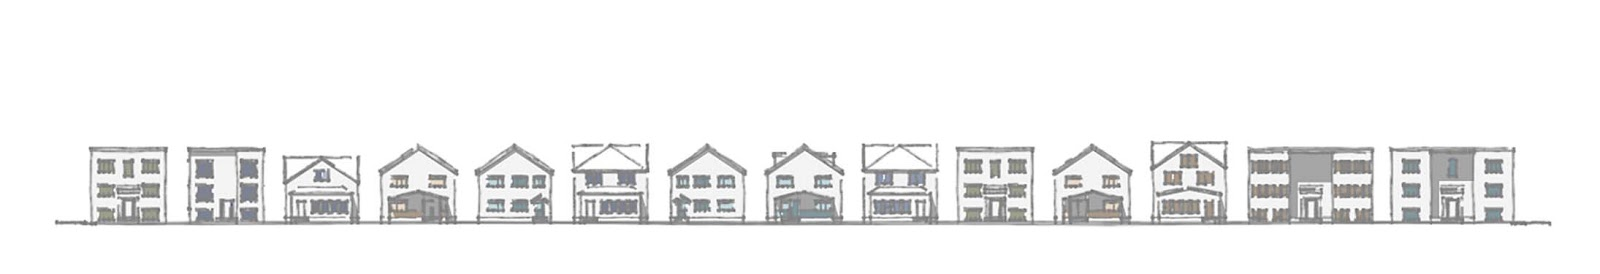 Graphic with two- and three-story buildings, including multi-family homes